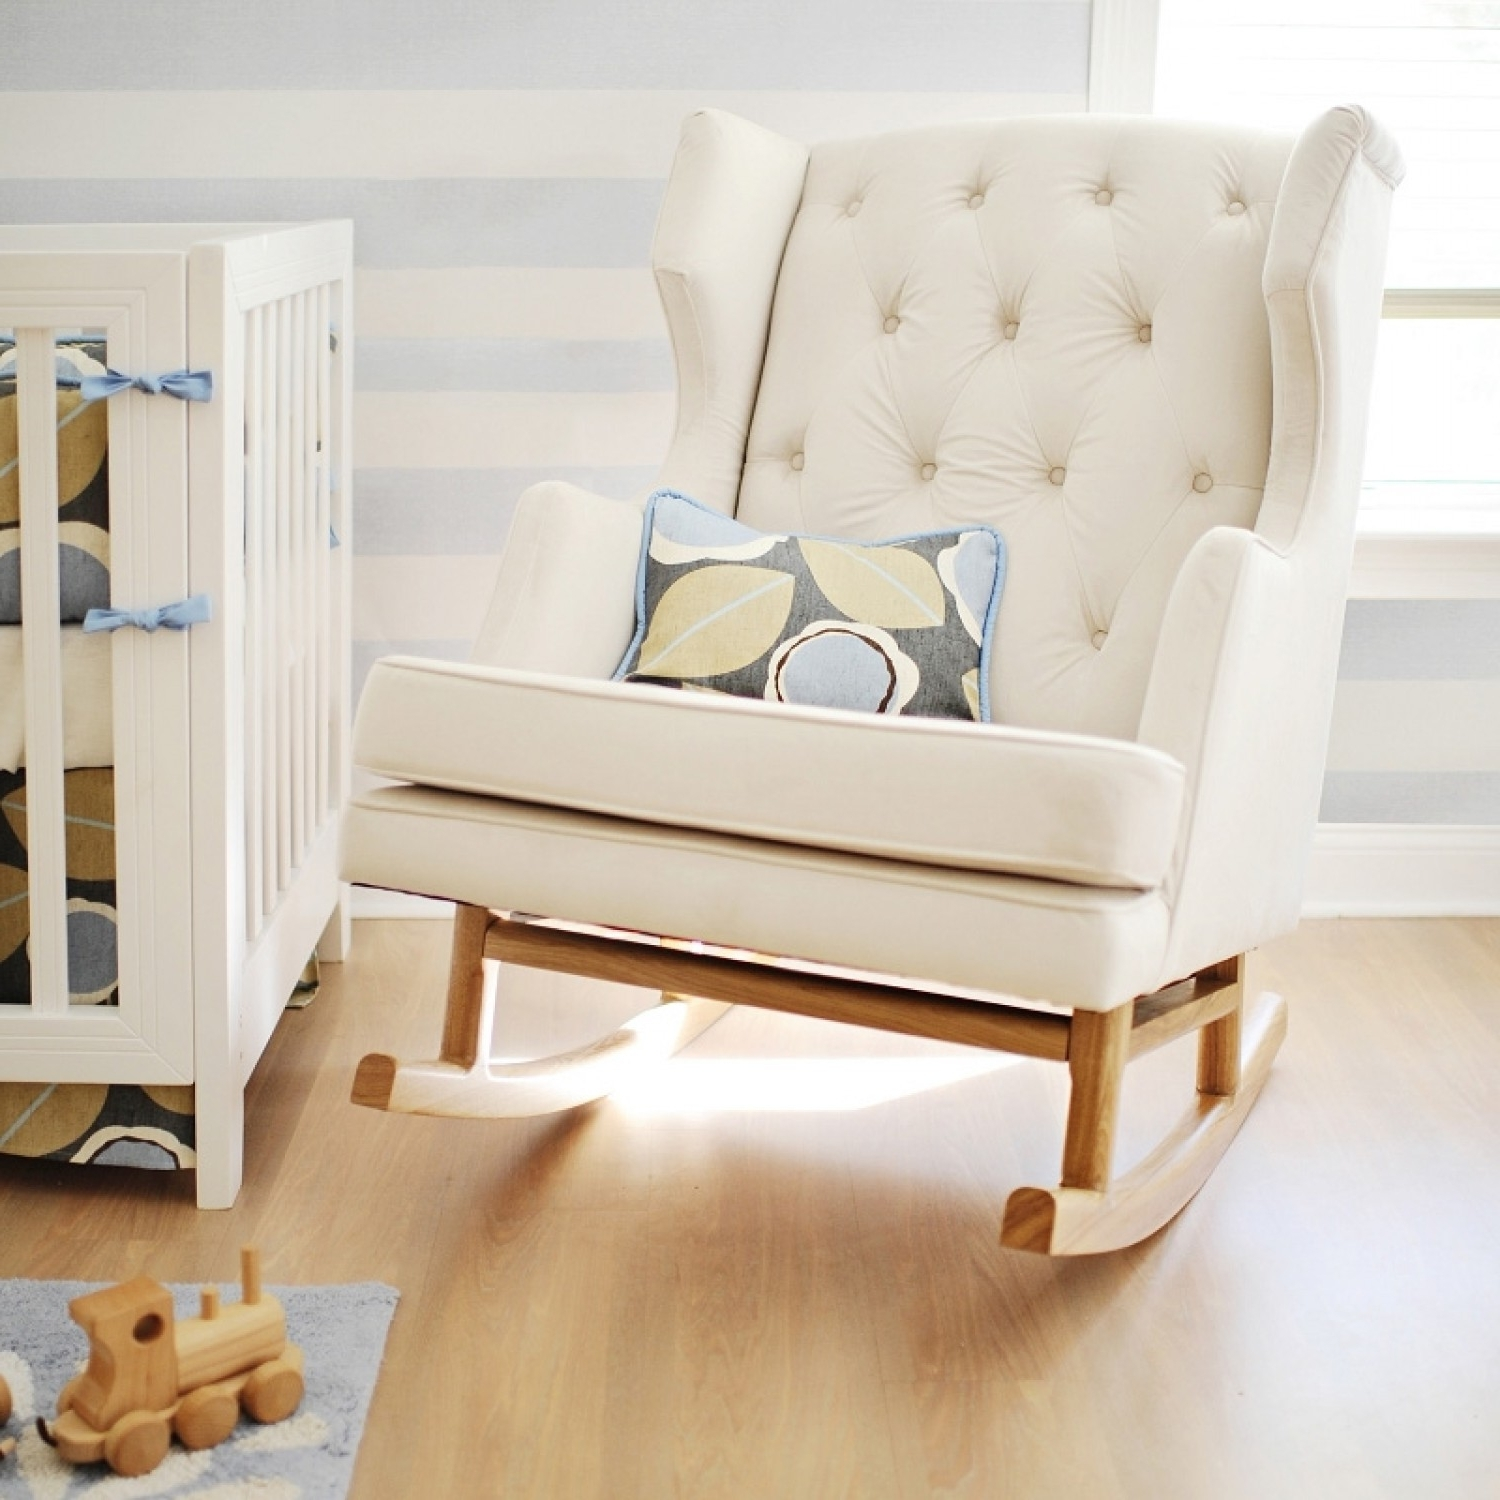 Most Popular White Wicker Rocking Chair For Nursery Pertaining To Bedroom : Furniture Traditional Bedroom Chair Magnificent Wicker (View 7 of 15)